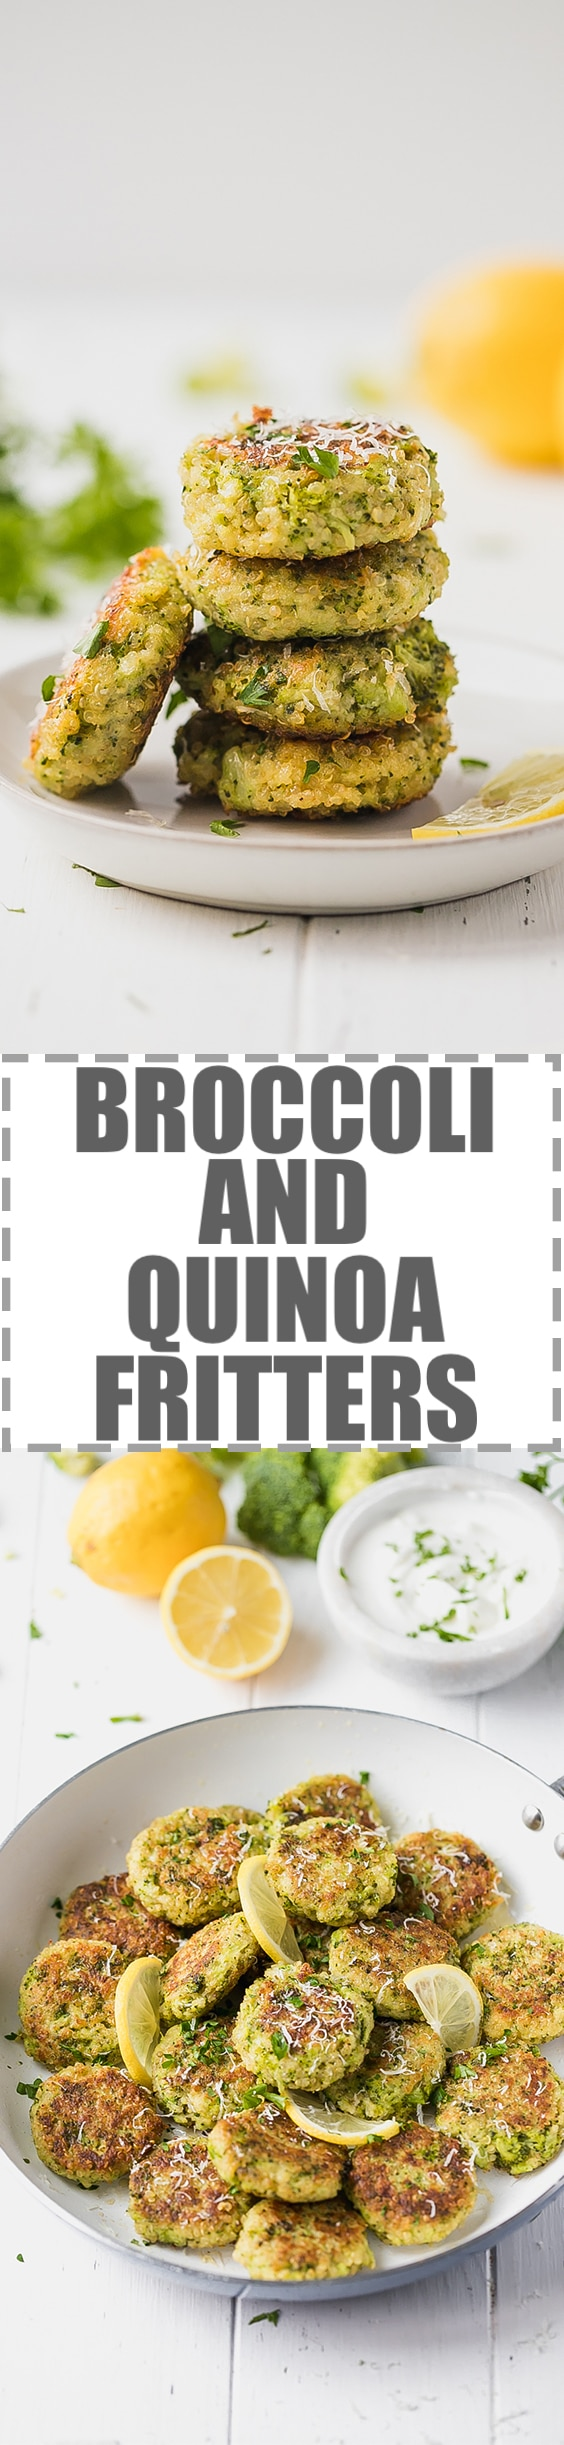 Crunchy, delicious and extremely easy to make broccoli and quinoa fritters, great for an appetizer or a light and simple vegetarian meal. #QUINOARECIPES #BROCCOLIFRITTERS #QUINOAFRITTERS